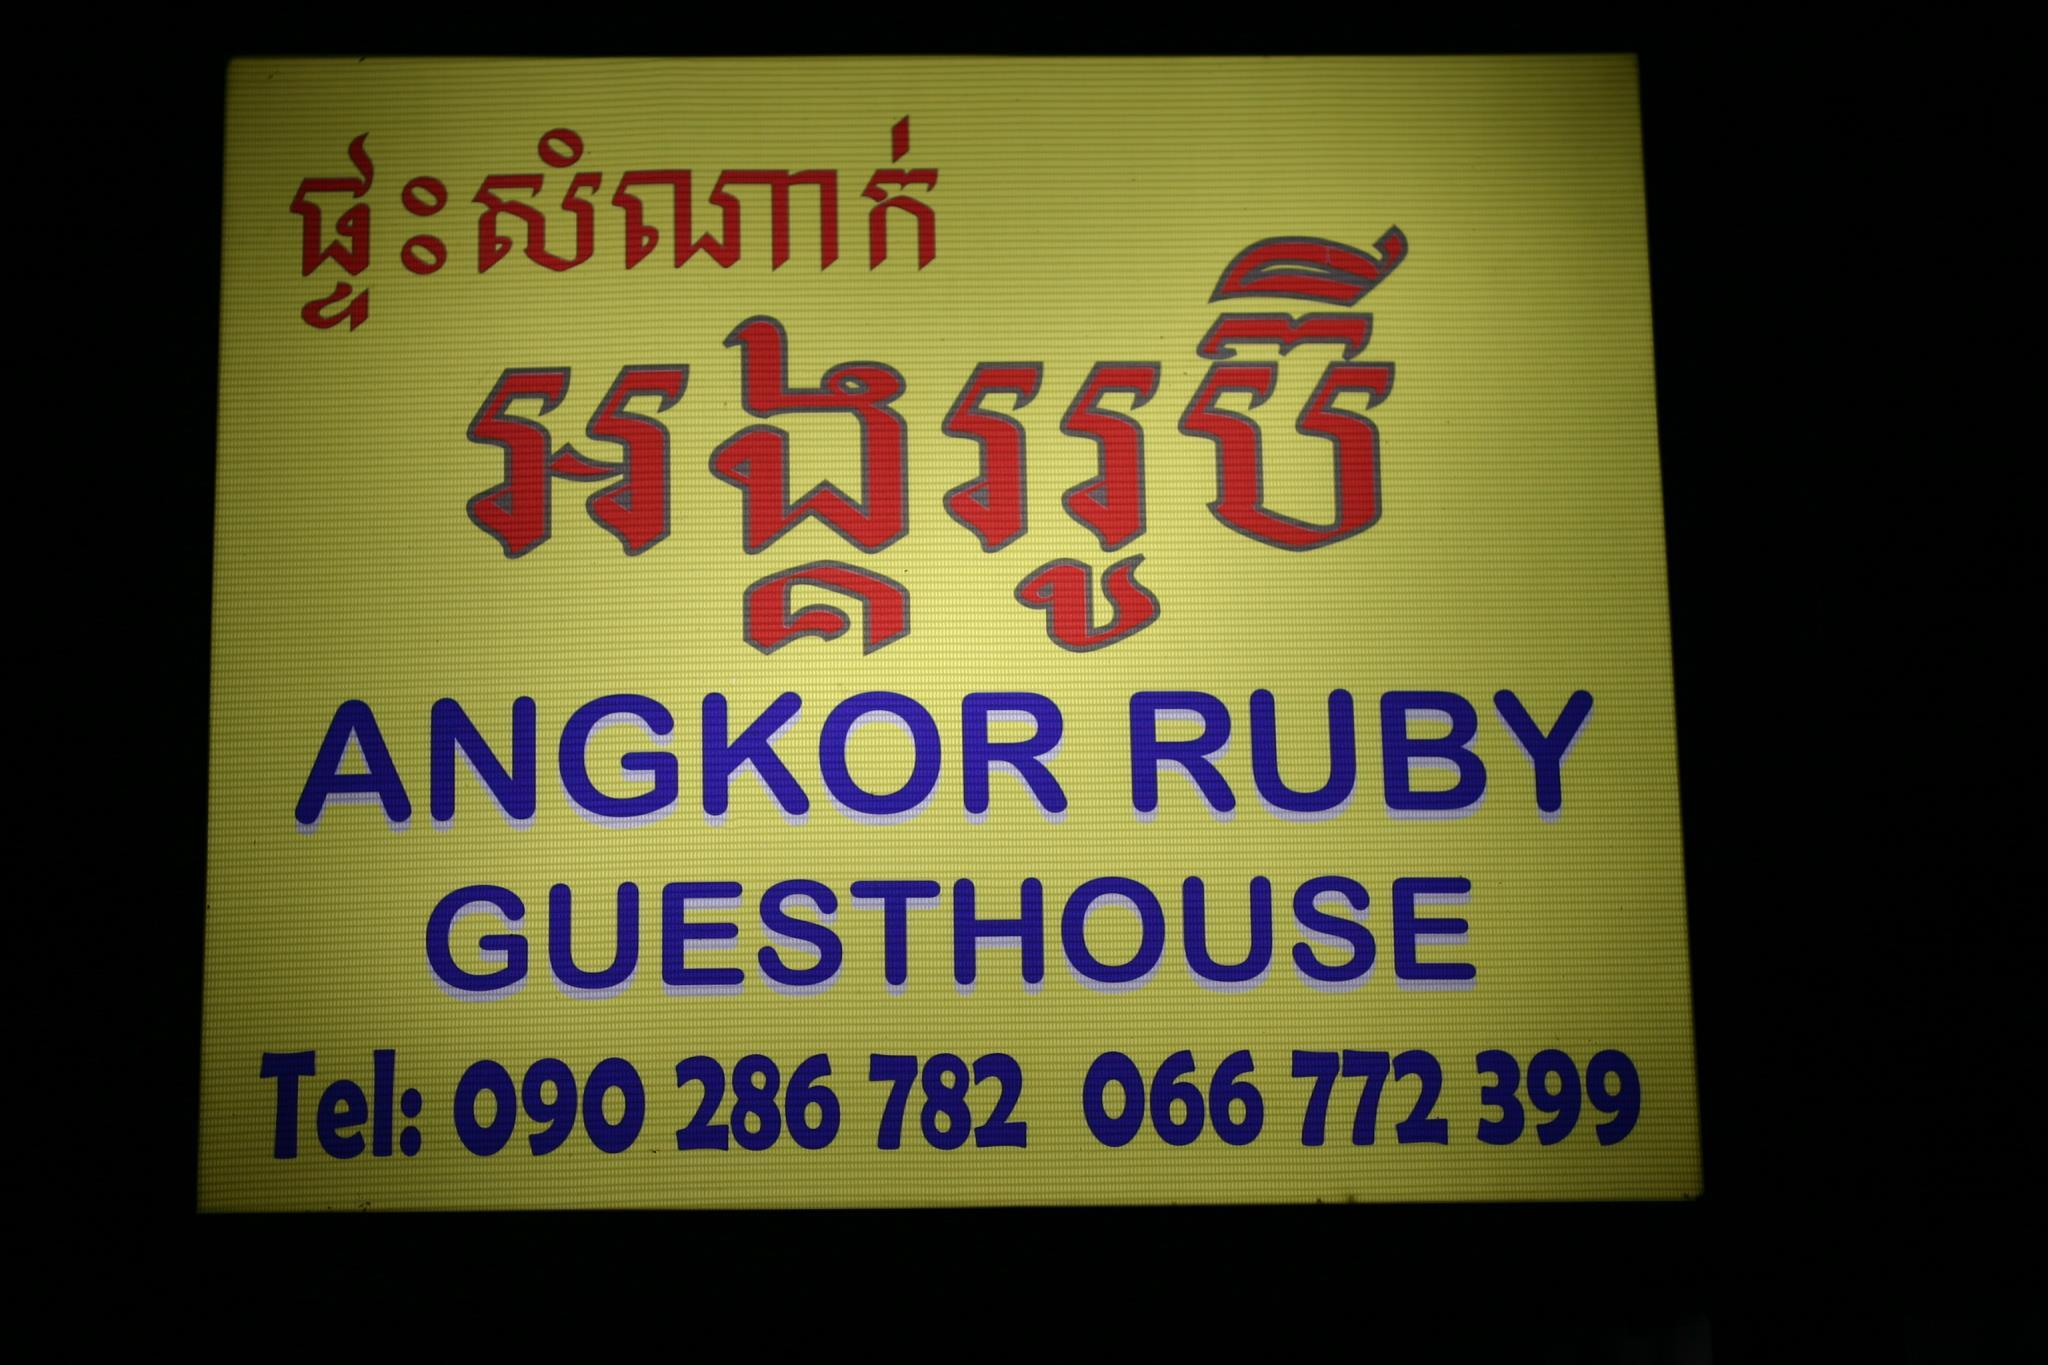 Angkor Ruby Guesthouse